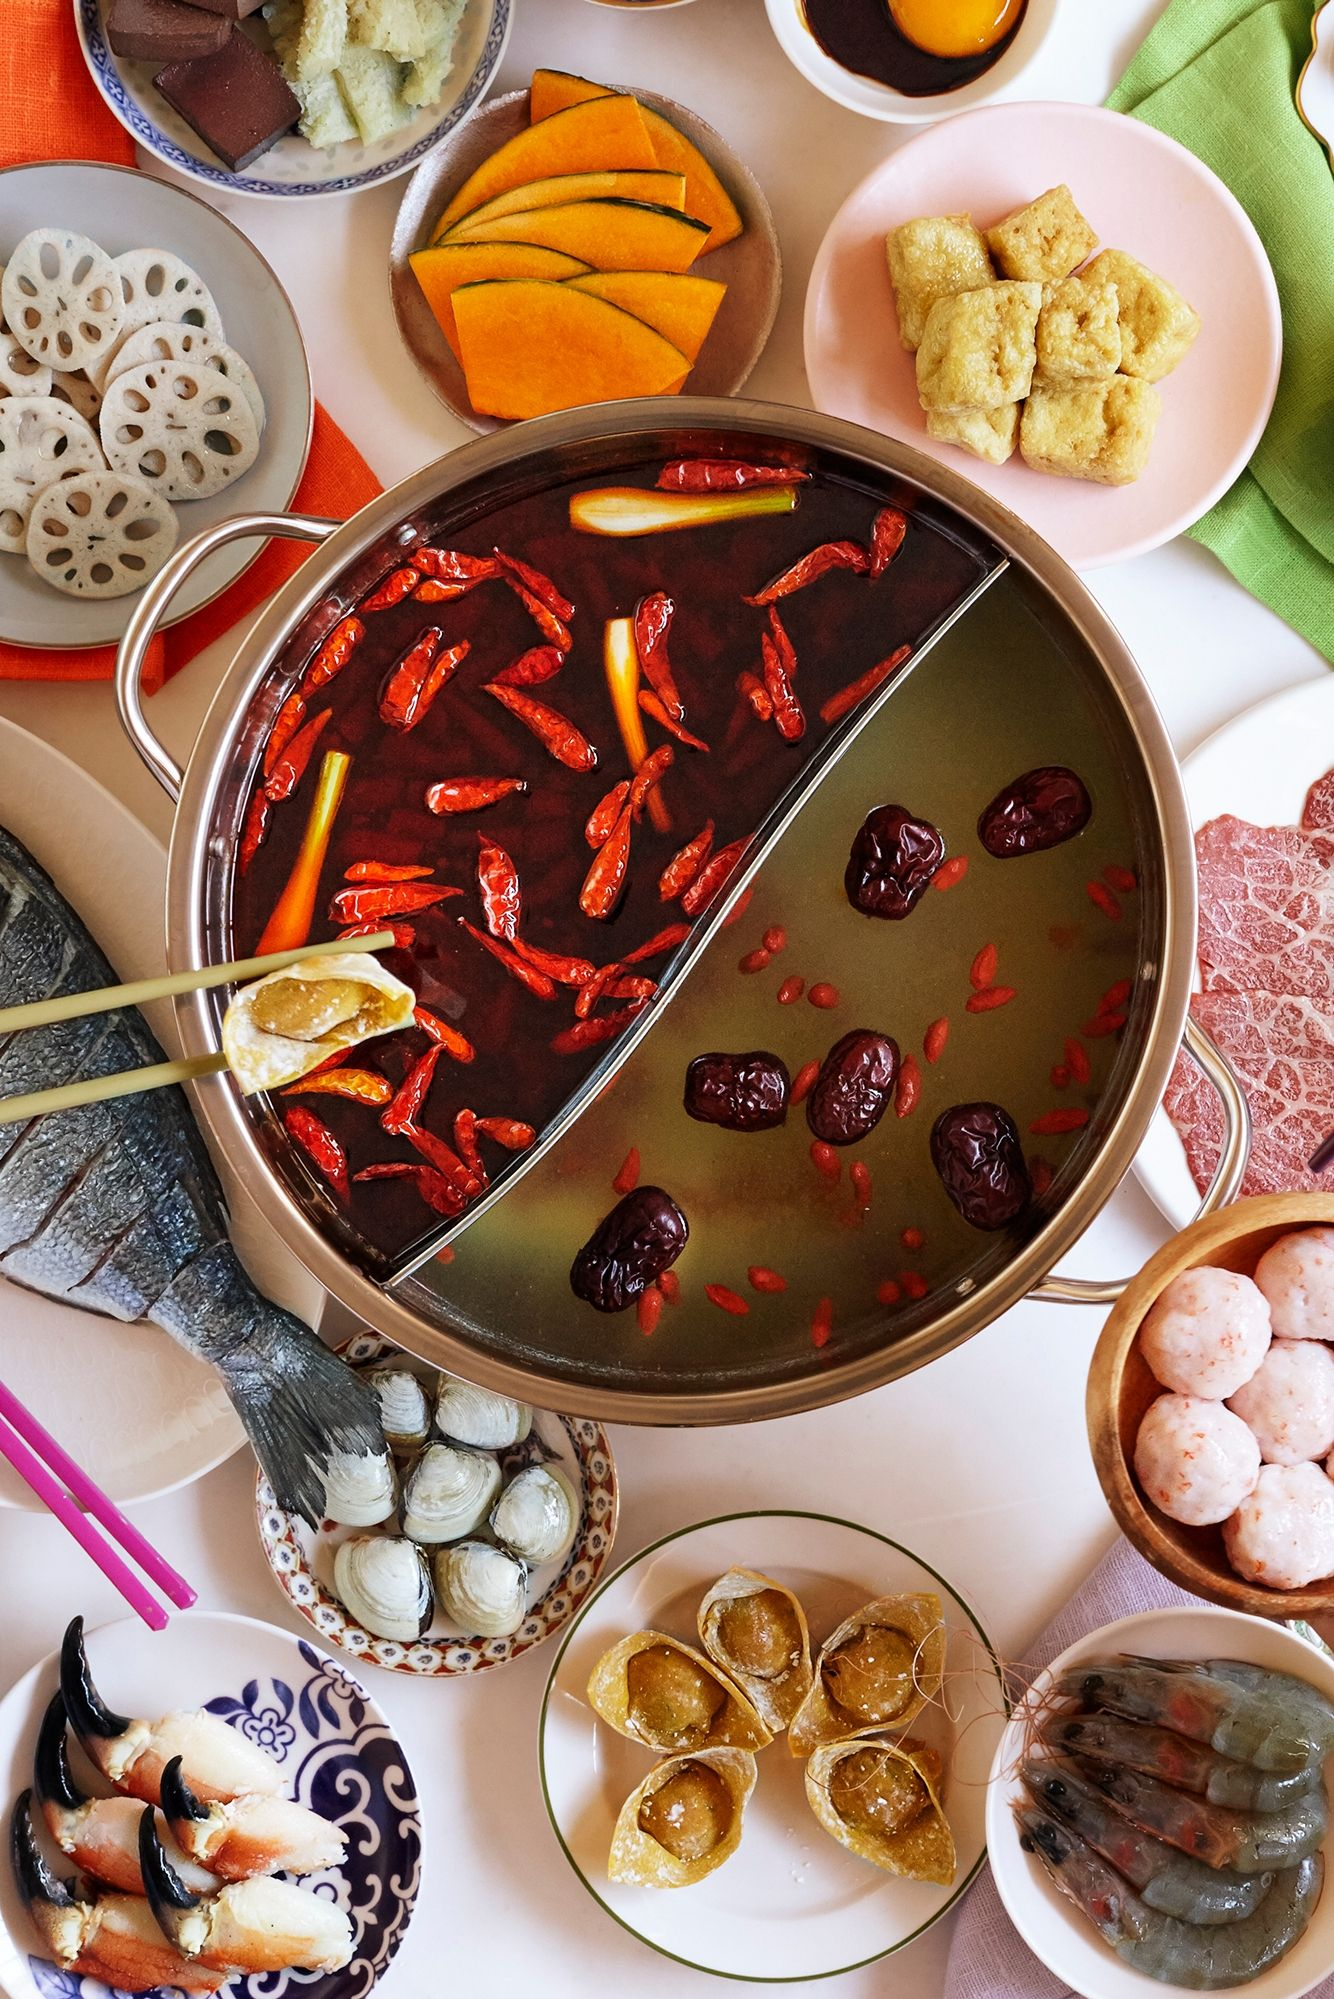 Table Top Chinese Hot Pot 4.5 litres, Serve 68 in 2020